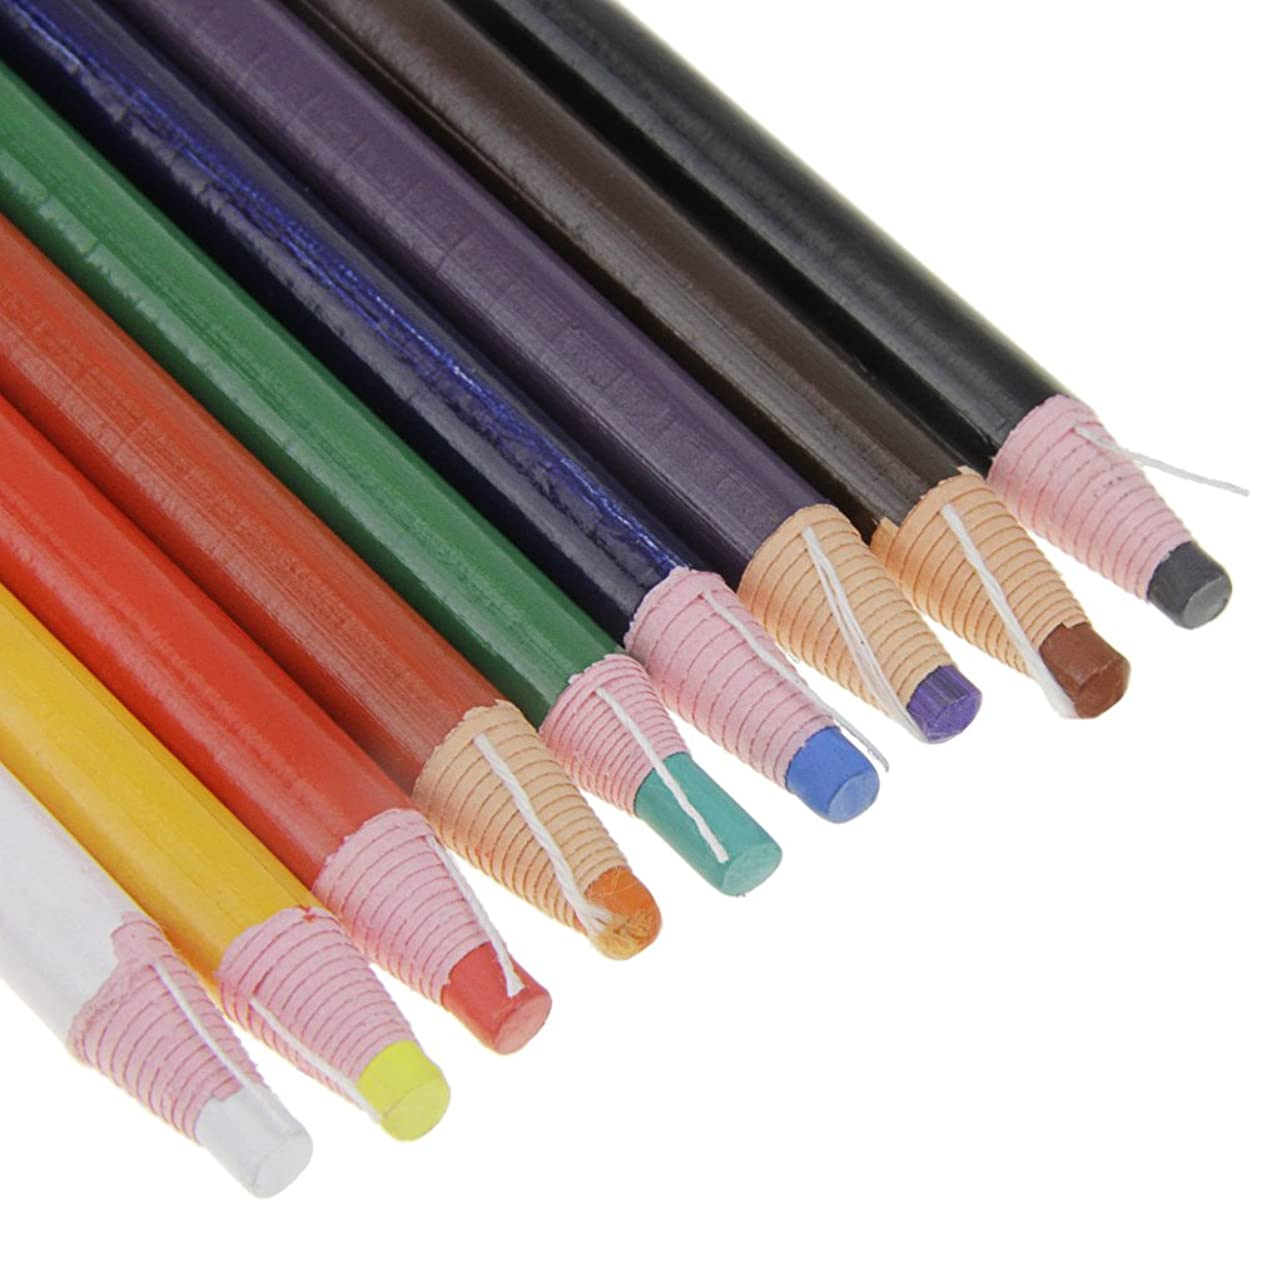 Peel-Off China Markers Grease Wax Pencil for Glass Cellophane Fabric,Metal,Kids Non?Toxic?Art Crayons Marking Pencils?Paper-wrapped 9 Pcs Assorted Colors Painting Pen for Coloring Drawing Marking